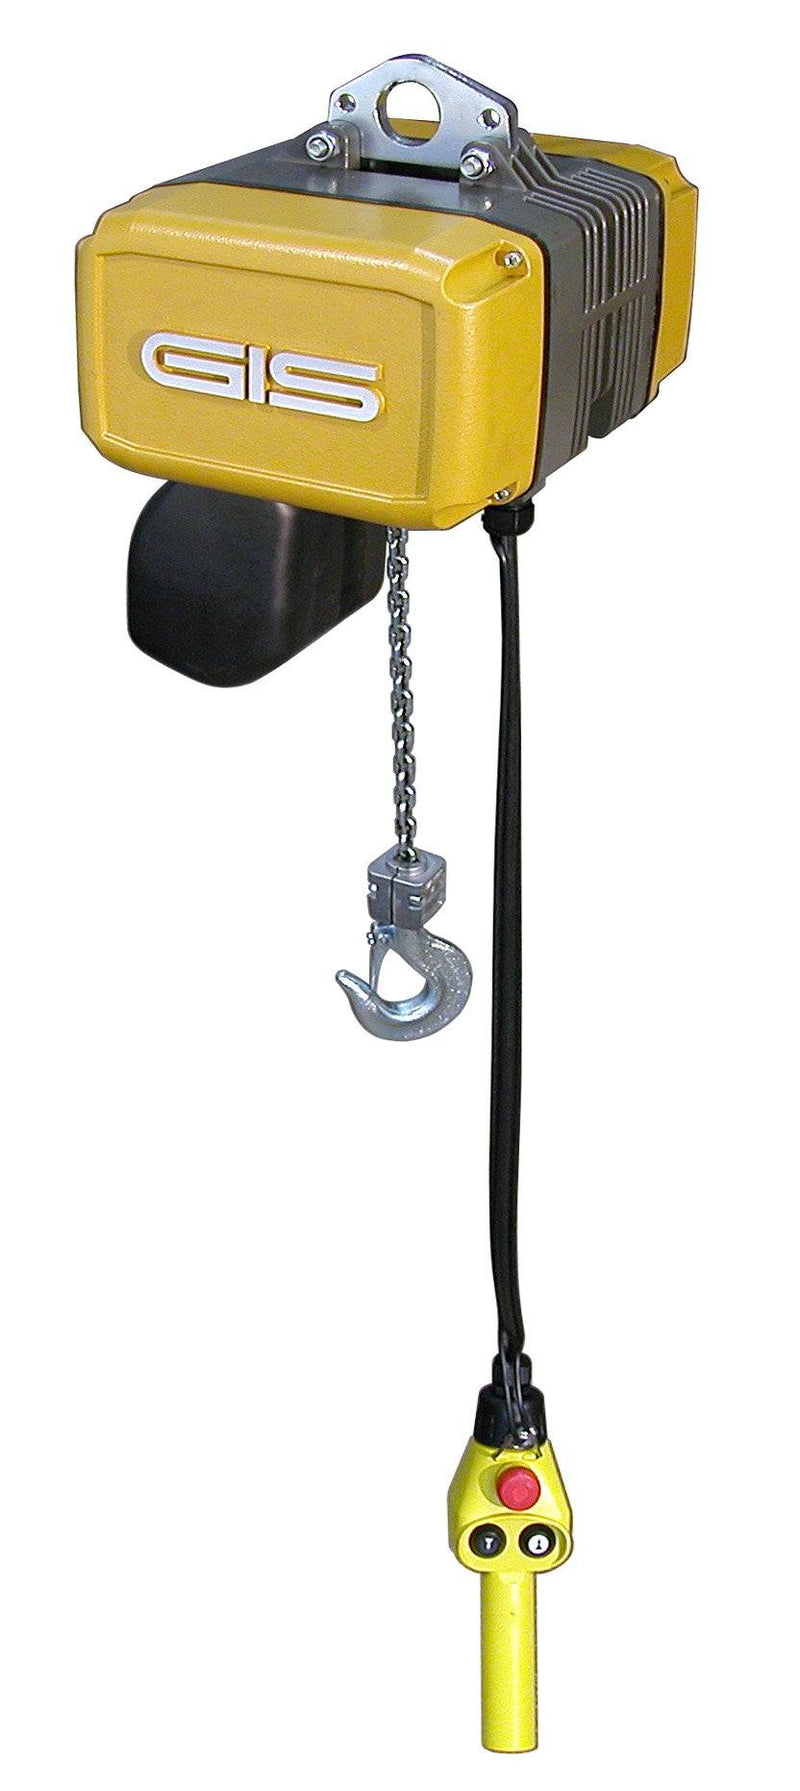 GIS GCH Series Electric Chain Hoists - 400V, 3 Phase Hoists 50Hz